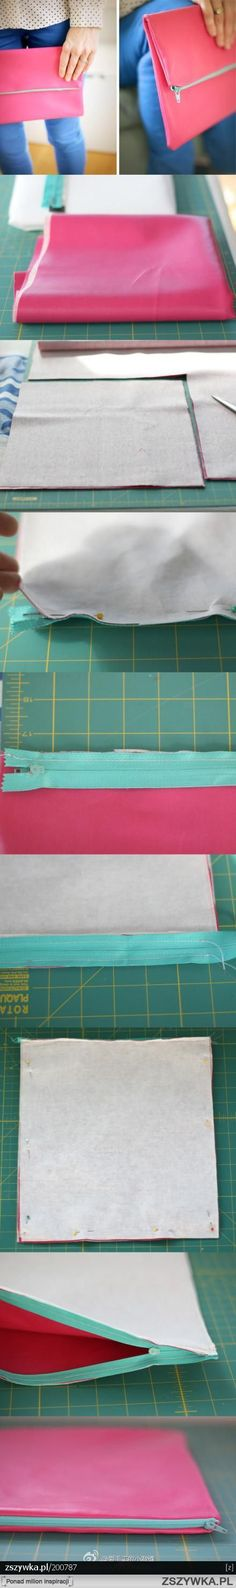 DIY Fashion. Make your own simple clutch with zipper. I'm using this tutorial to make a sleeve for my iPad!